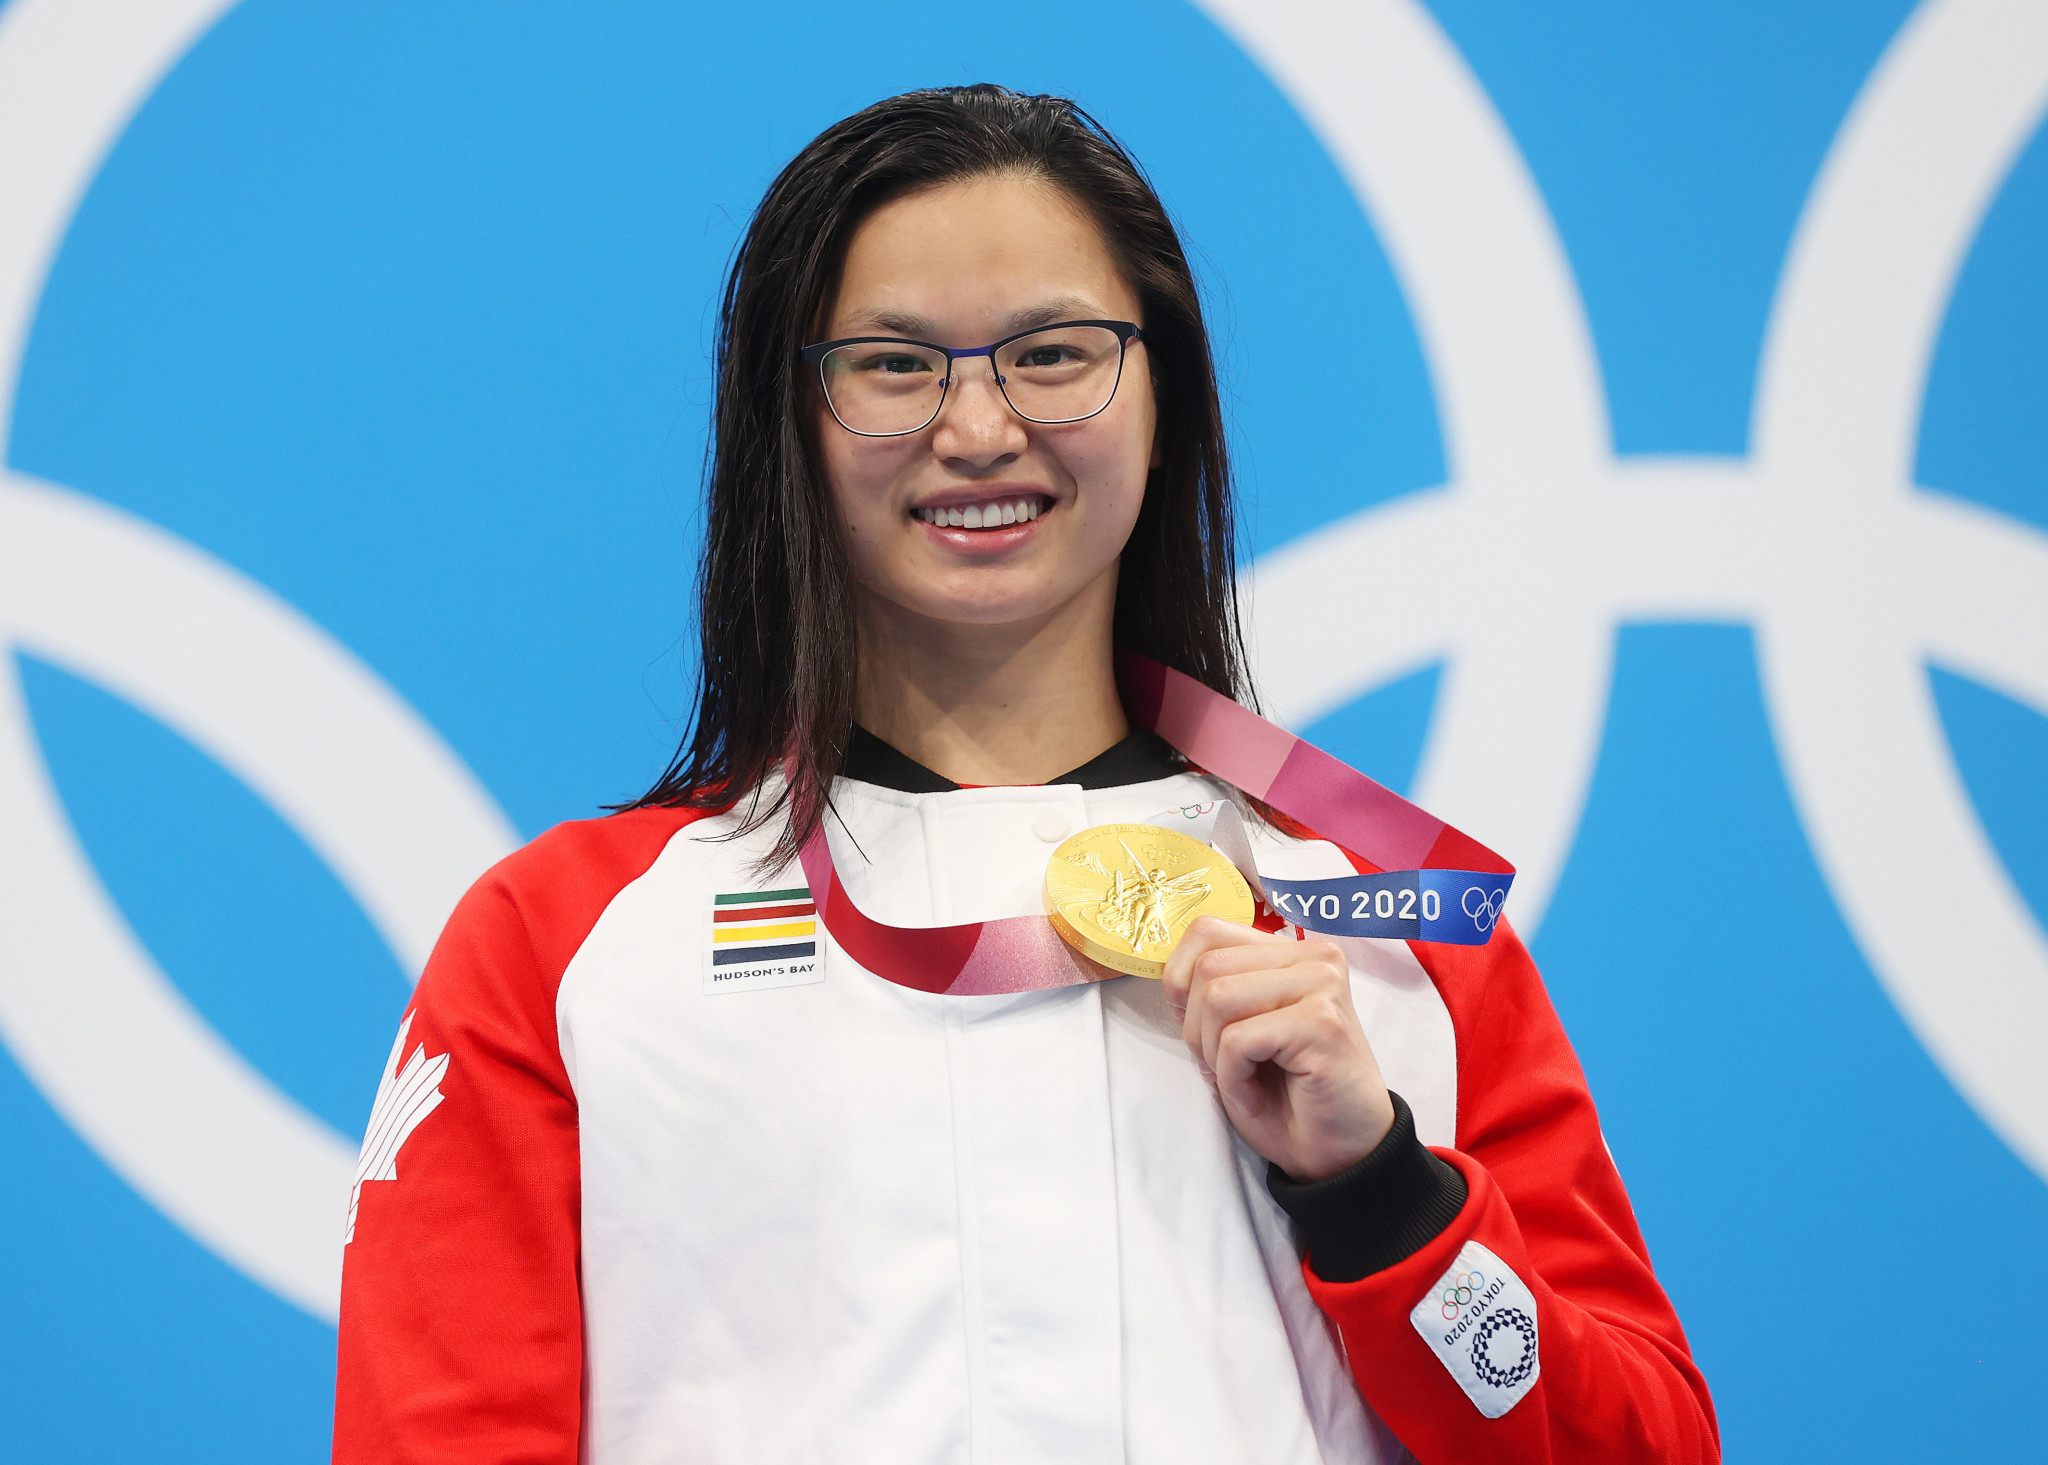 Canada's Maggie Manceil shows off her  Olympic gold medal she won in the 100m butterfly ©Getty Images